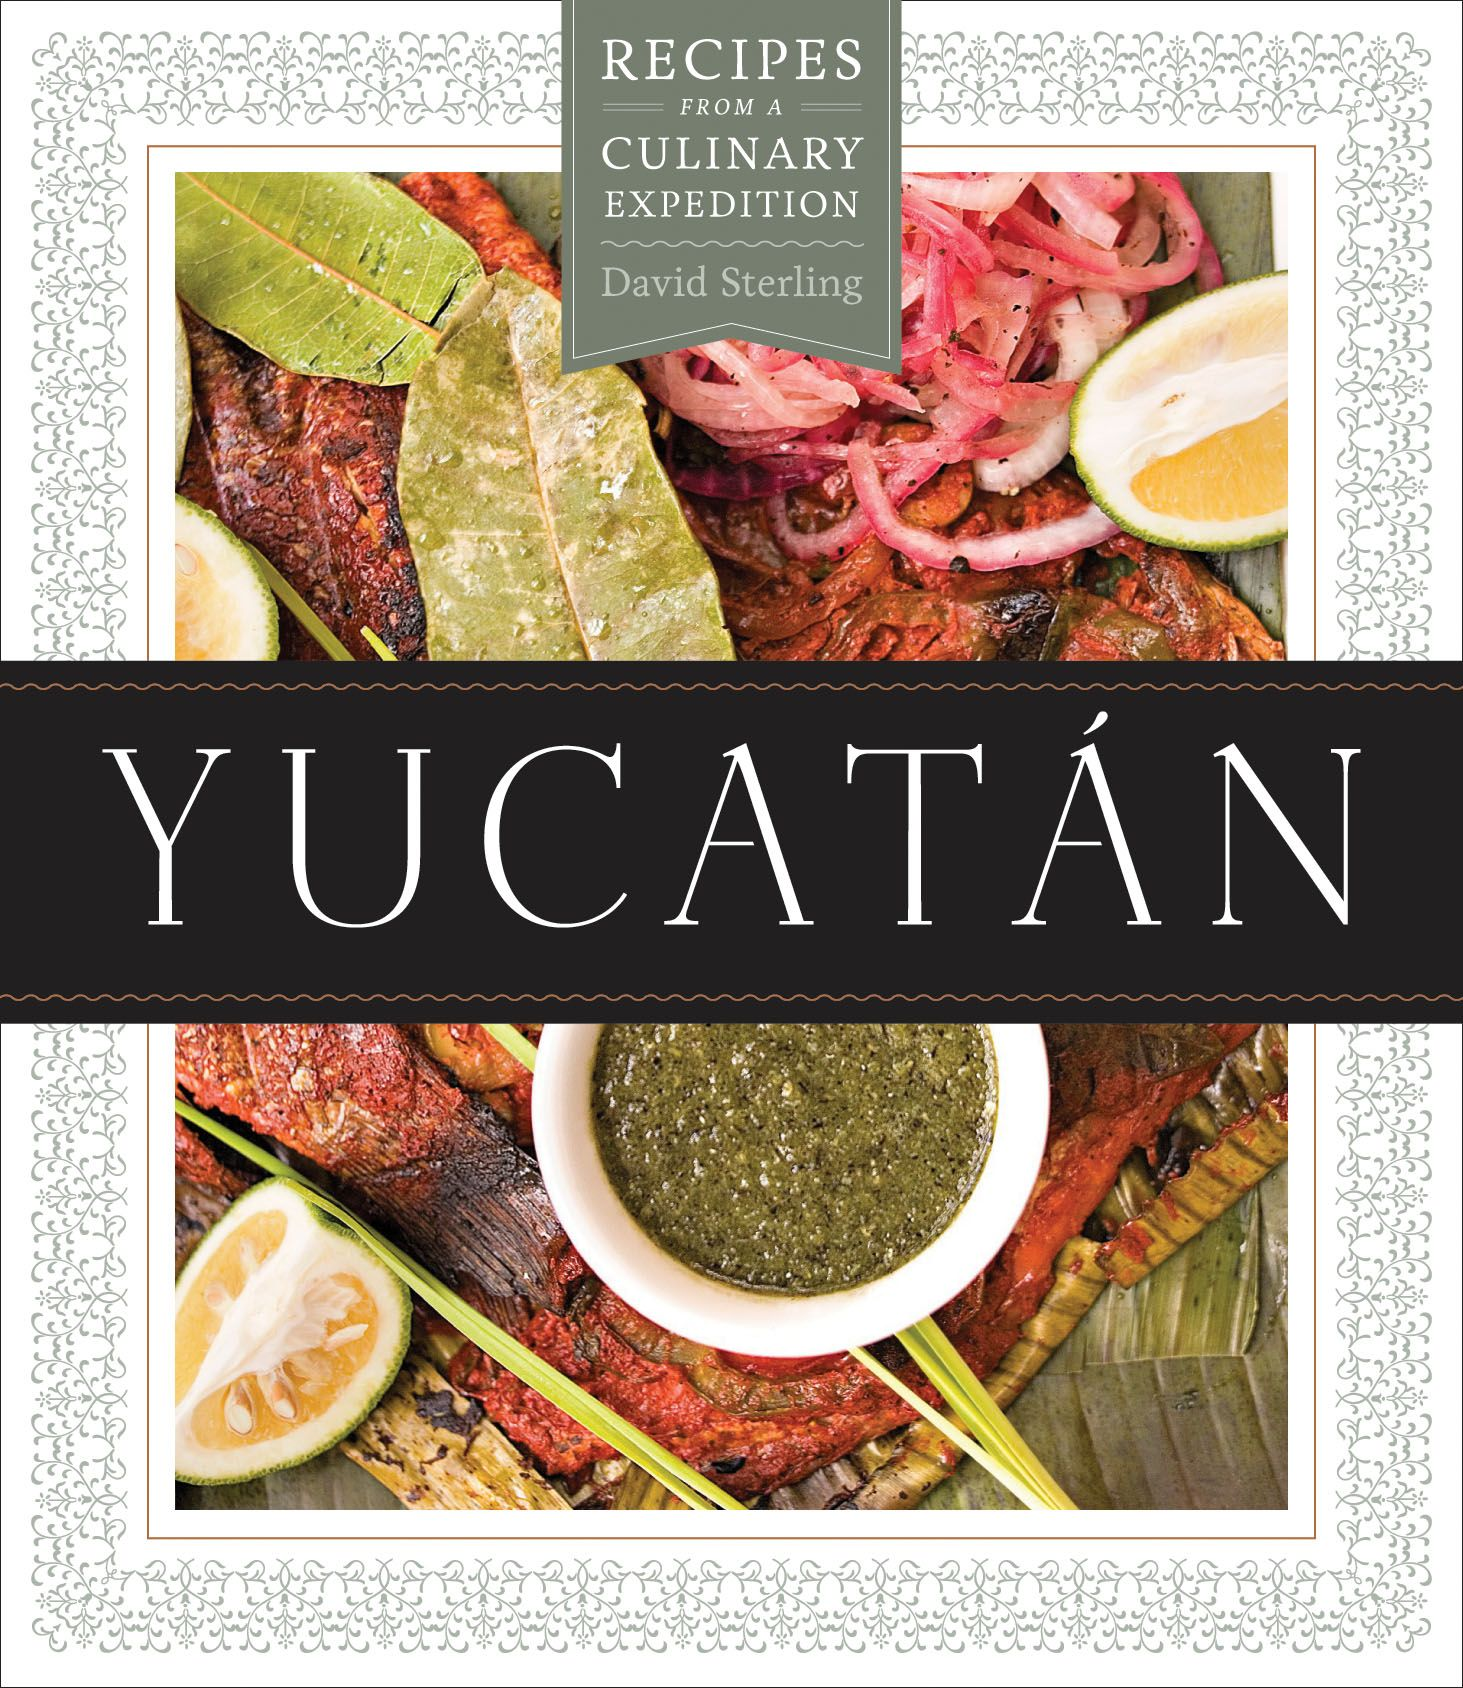 Comida Yucateca Libros Yucatán Recipes From A Culinary Expedition By David Sterling